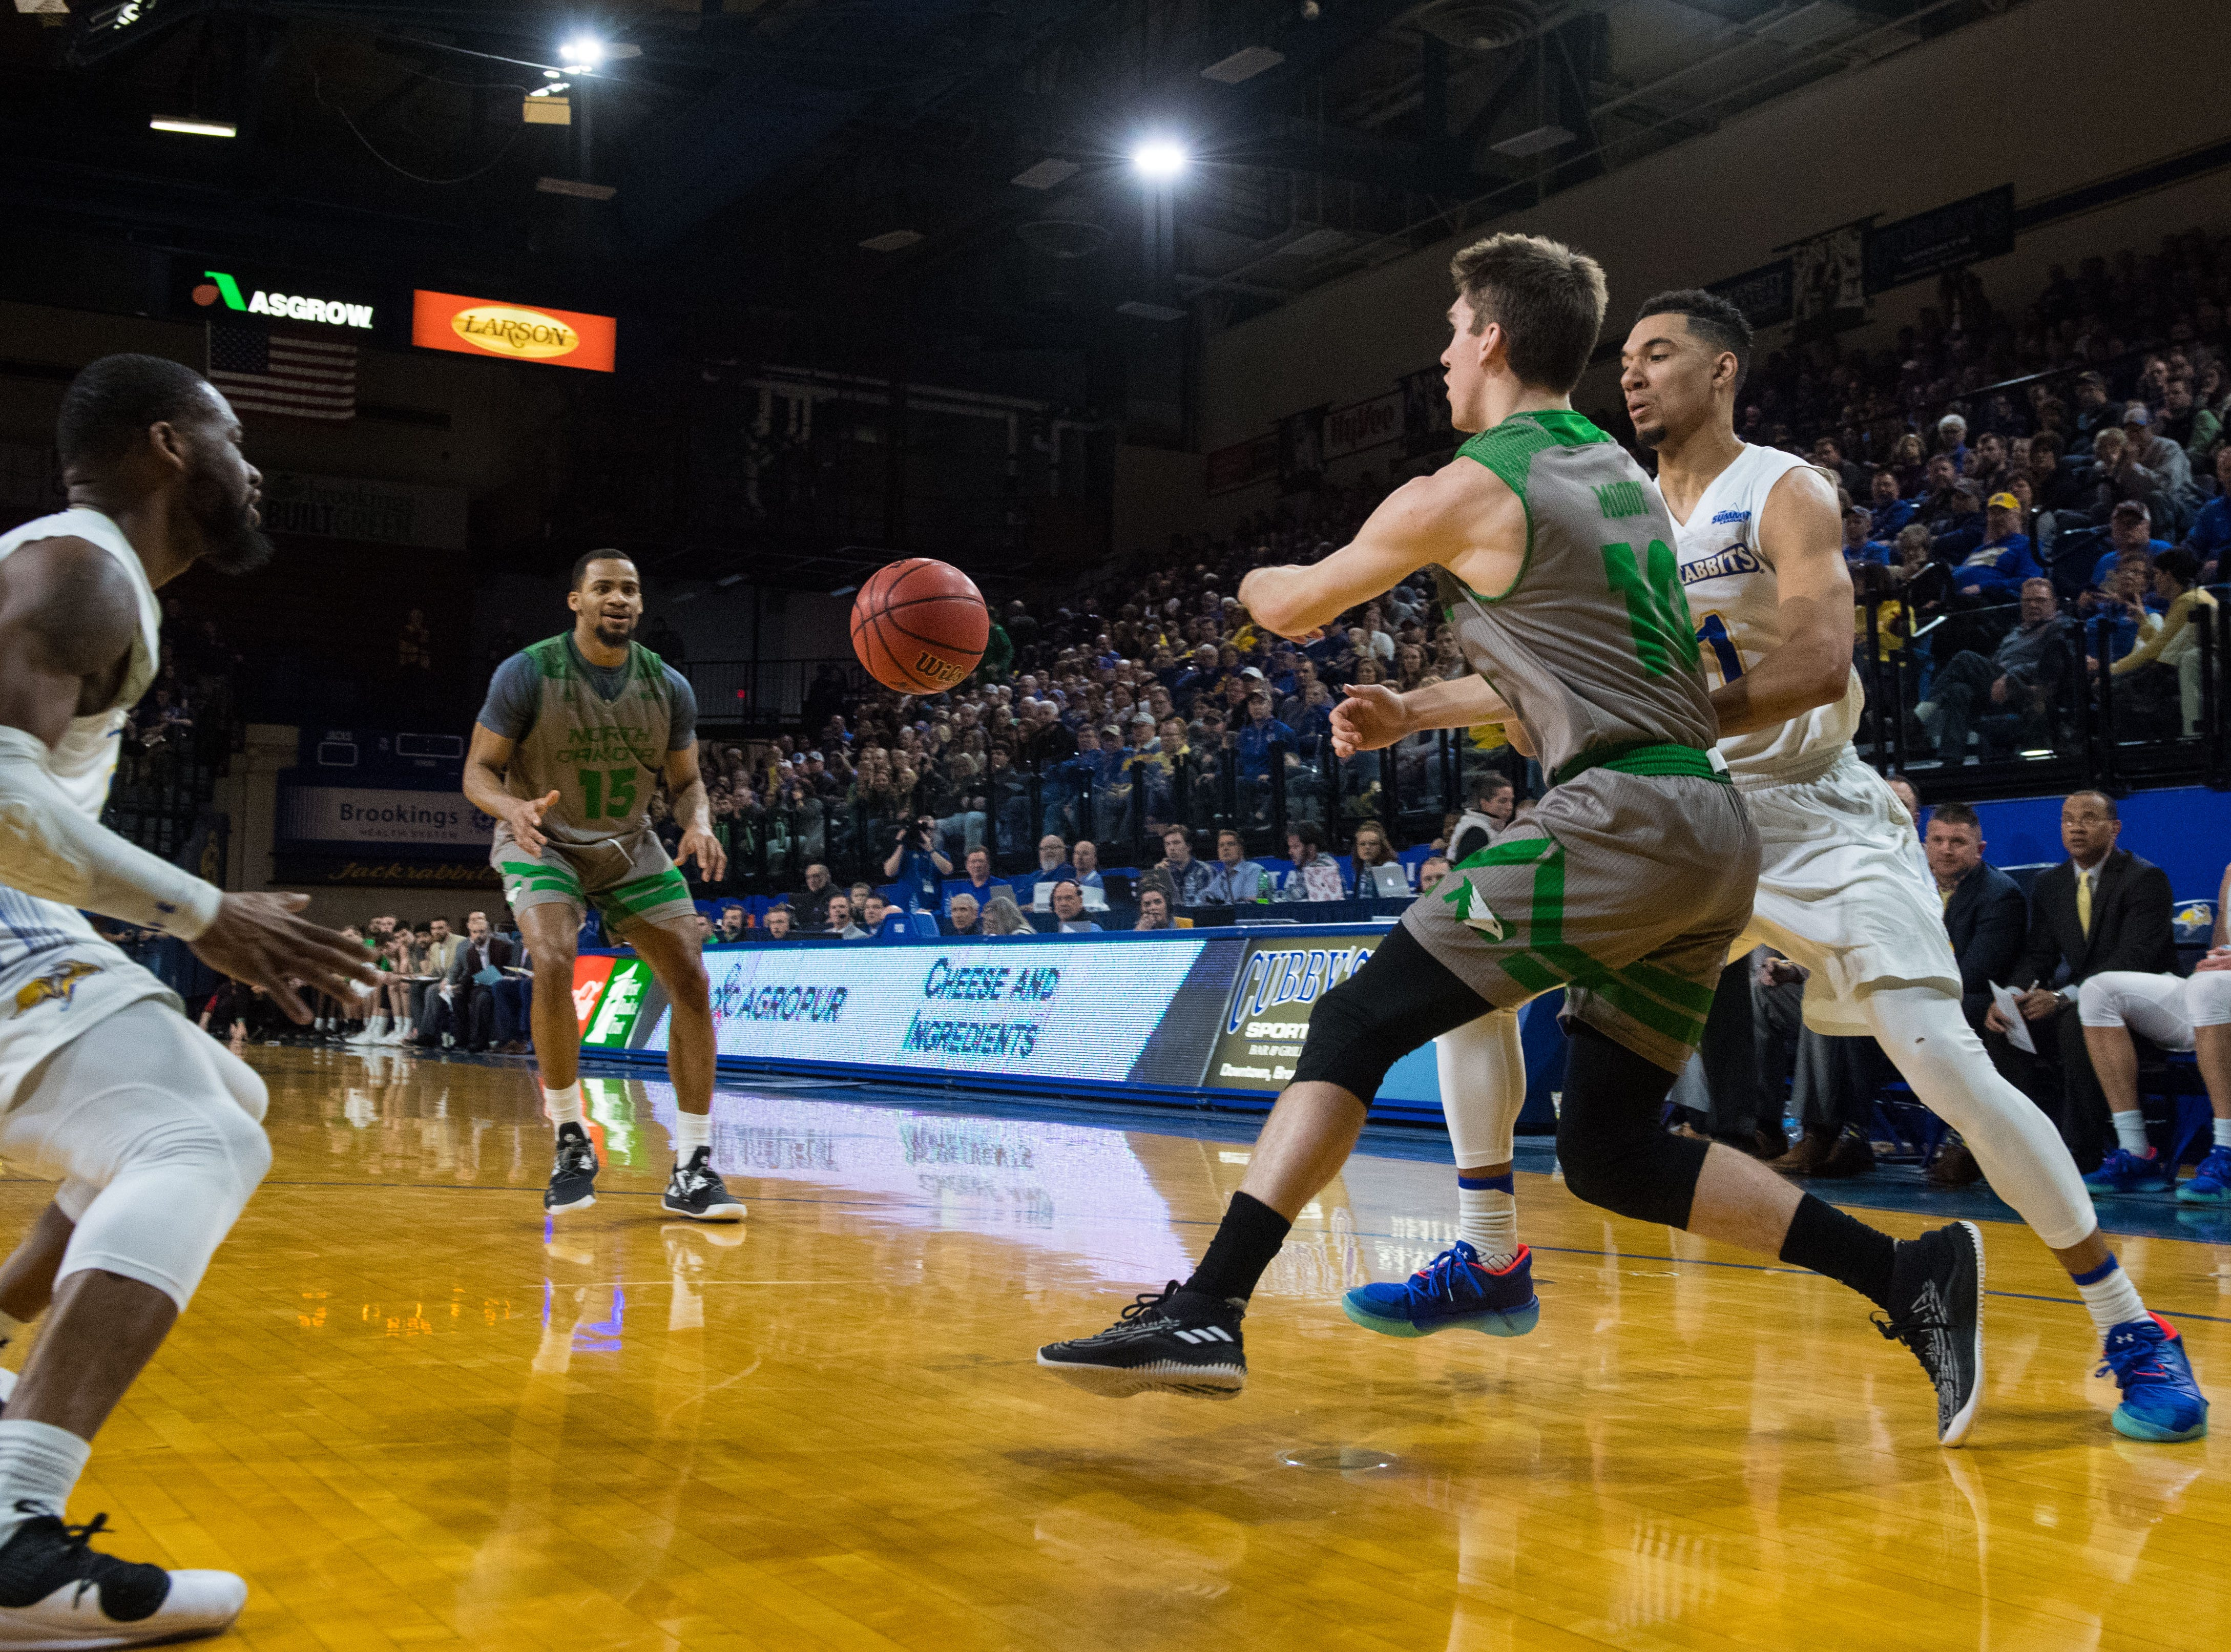 North Dakota's Aanen Moody (10) passes the ball to Cortez Seales (15) during a game against South Dakota State in Brookings, S.D., Saturday, Feb. 9, 2019.